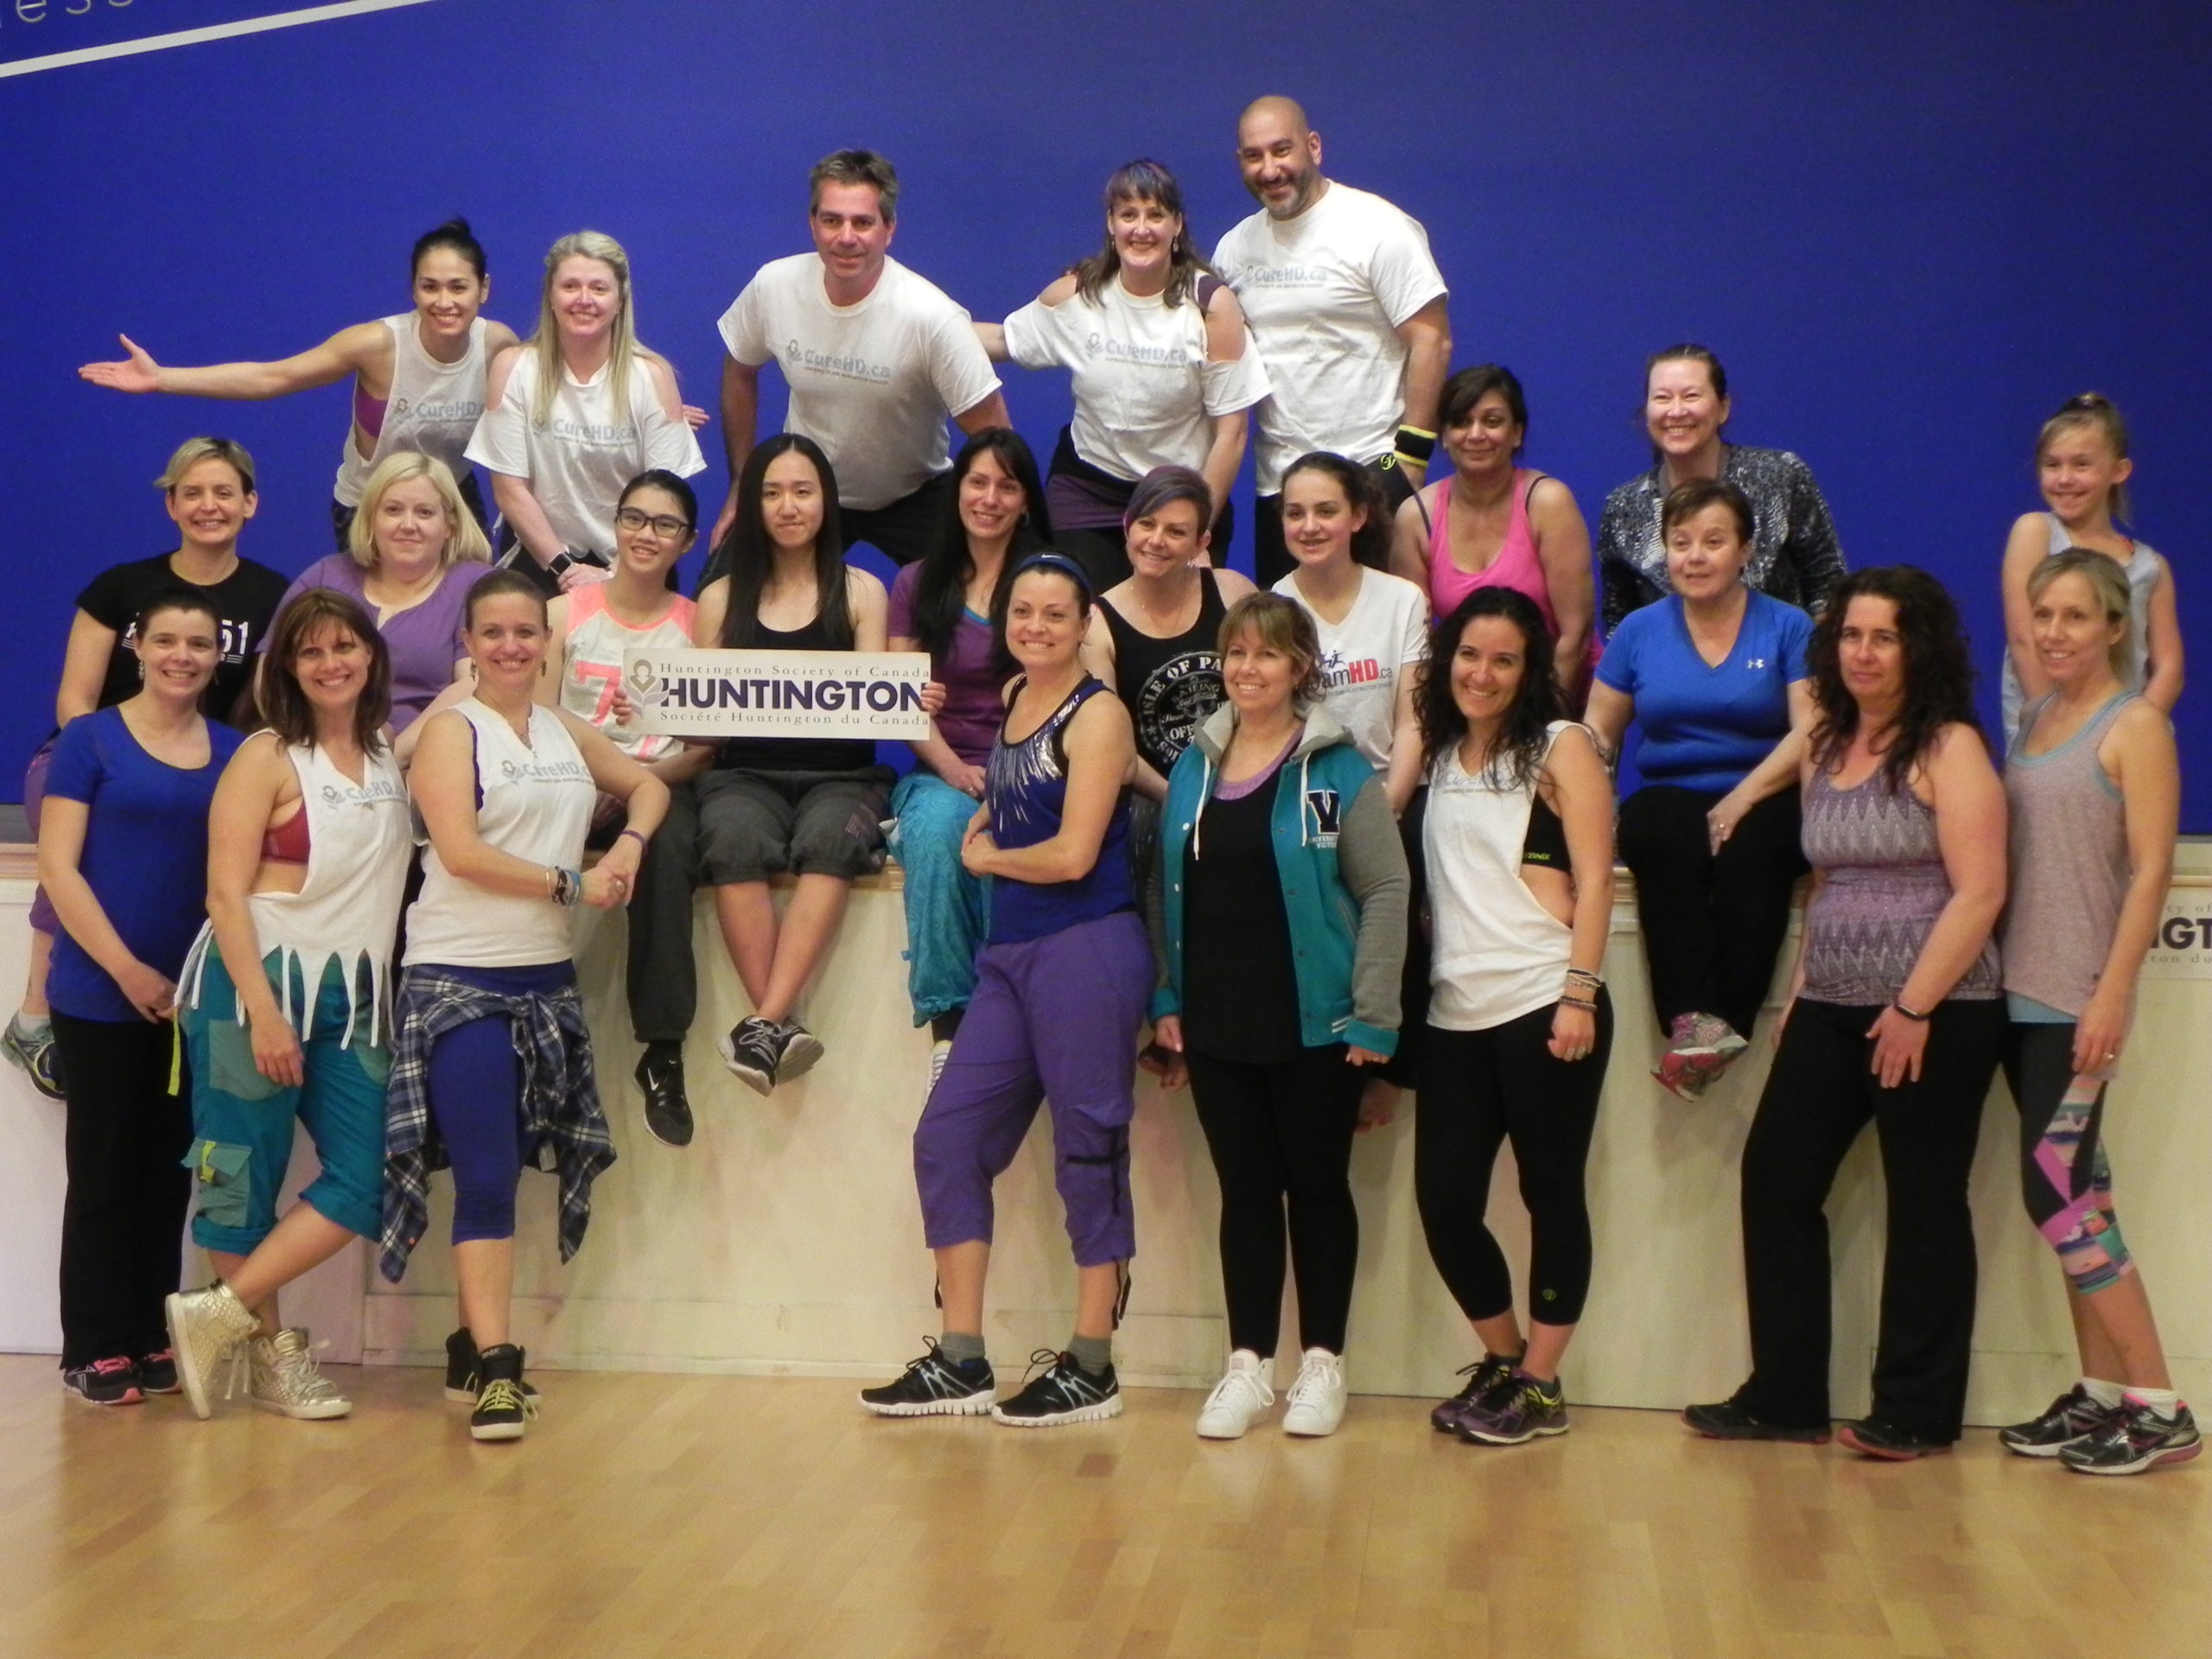 Group posing for a picture at the Newmarket, Ontario Zumbathon